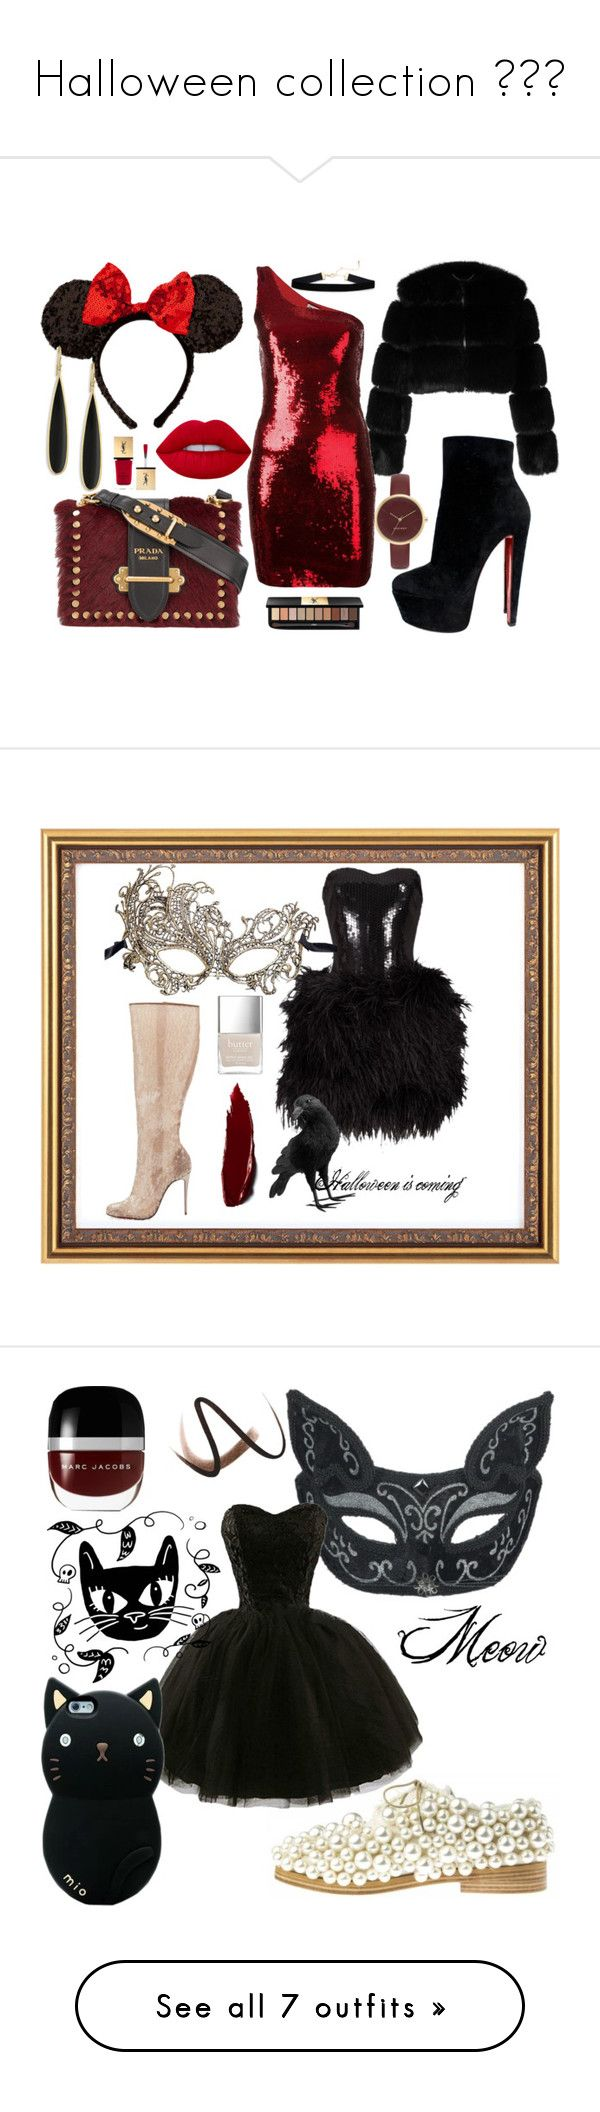 """Halloween collection 🤗😣😥"" by scheylly ❤ liked on Polyvore featuring Givenchy, Yves Saint Laurent, Christian Louboutin, Lime Crime, Ippolita, Prada, Nine West, Lillie Rubin, Masquerade and Pottery Barn"